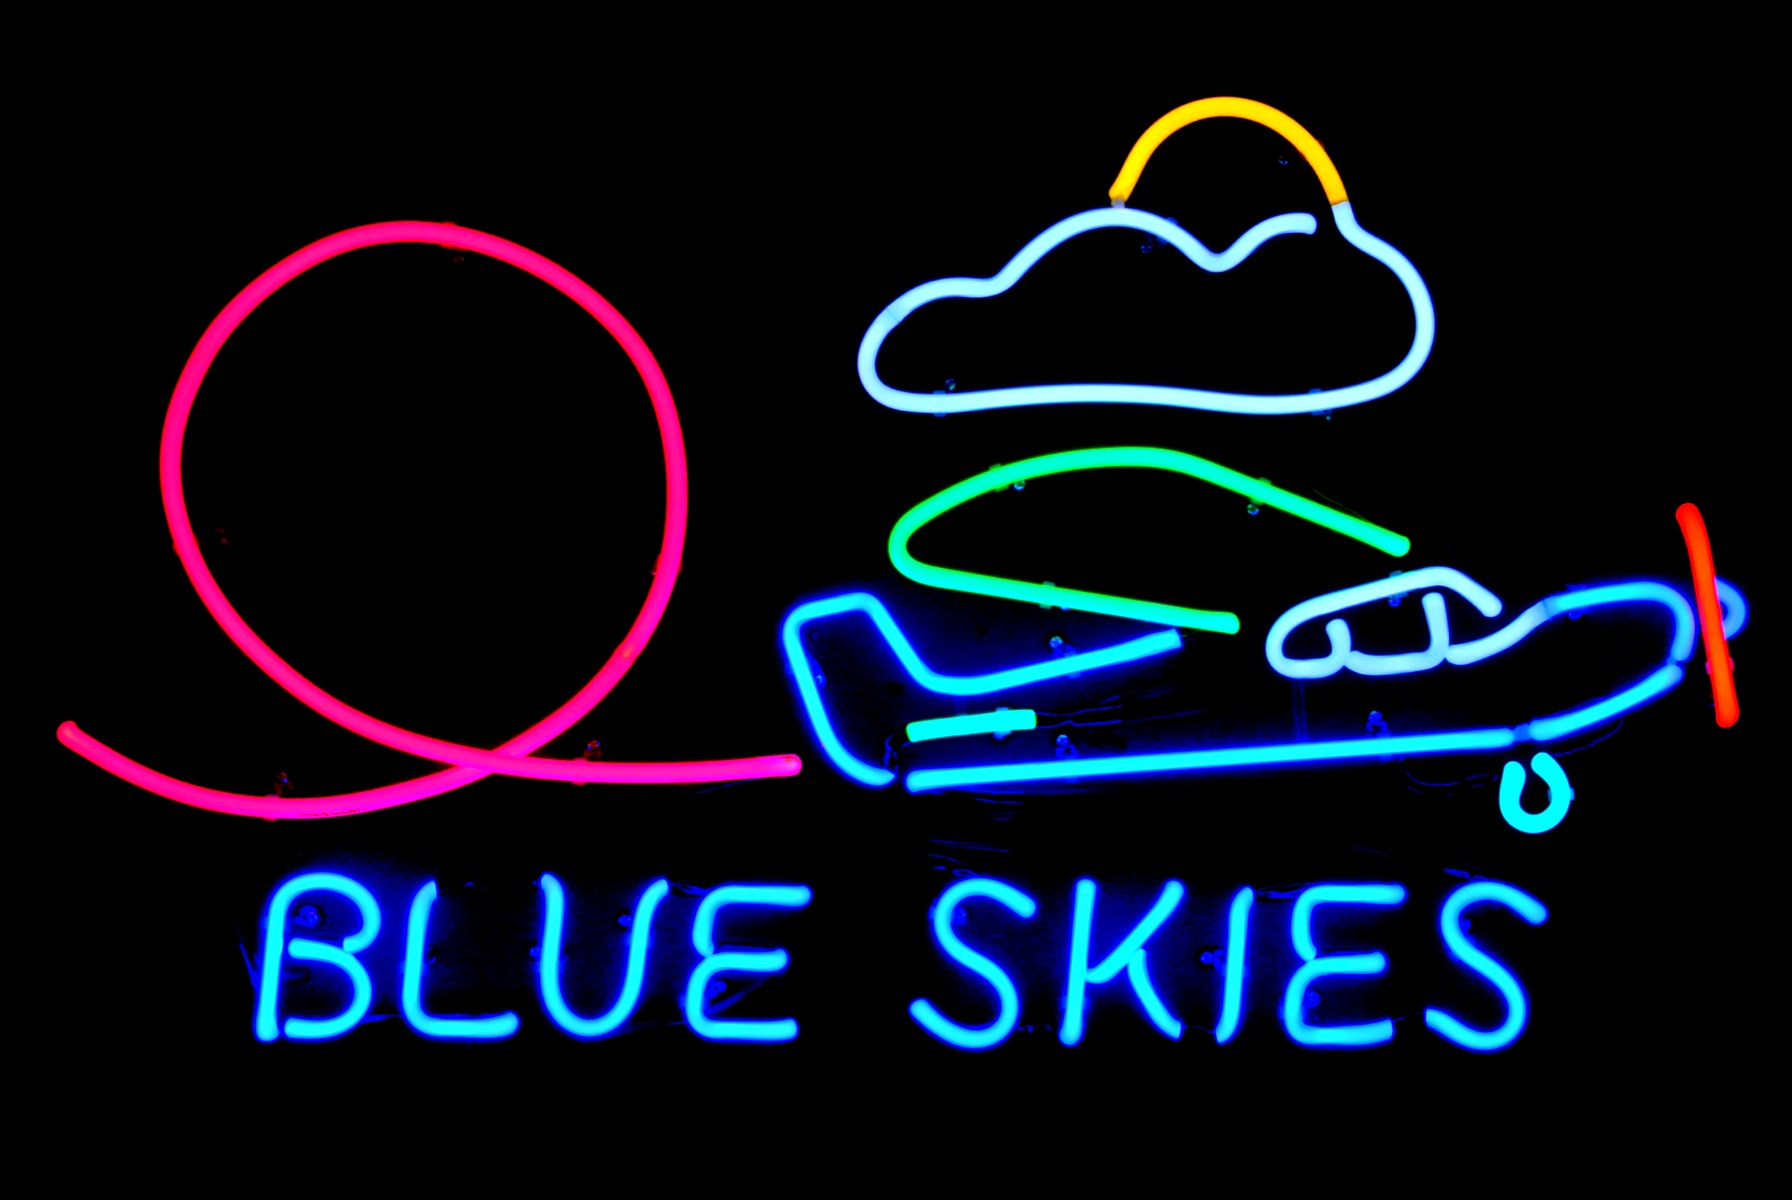 Blue Skies - Stunt Airplane Neon Artwork by John Barton - BartonNeonMagic.com